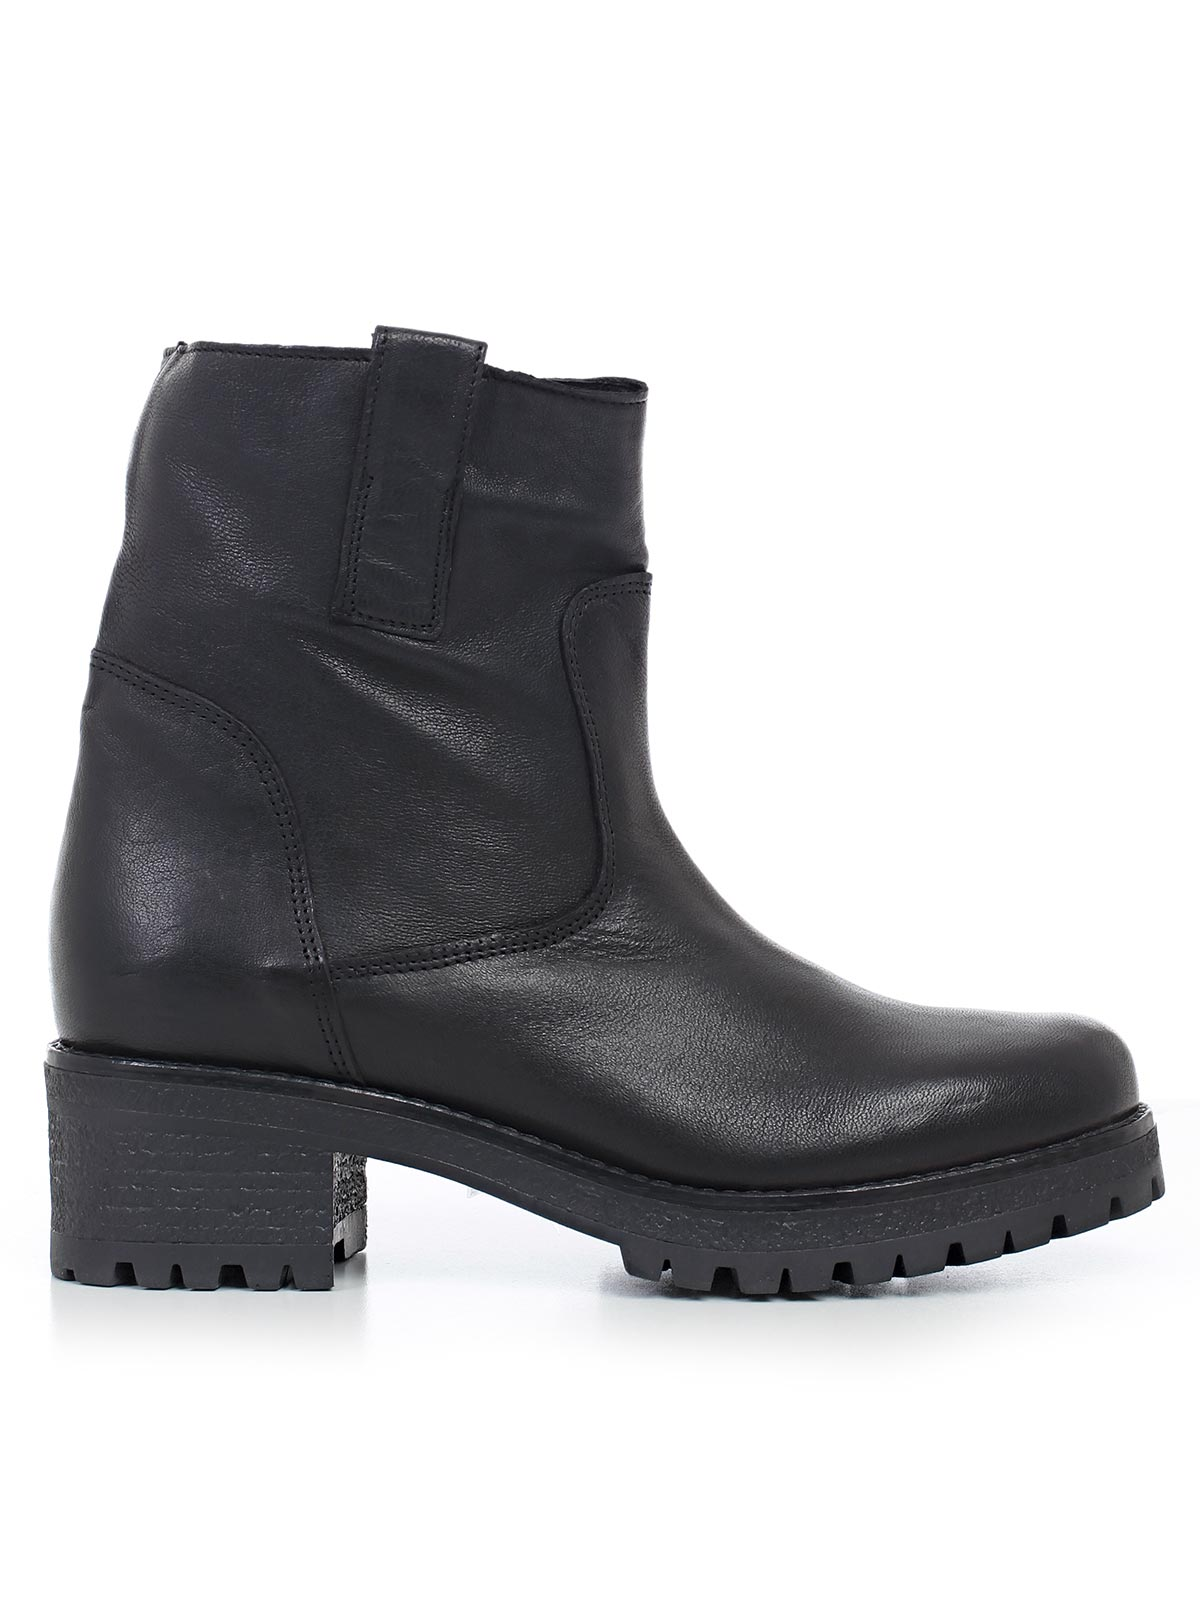 Picture of P.A.R.O.S.H. Boots